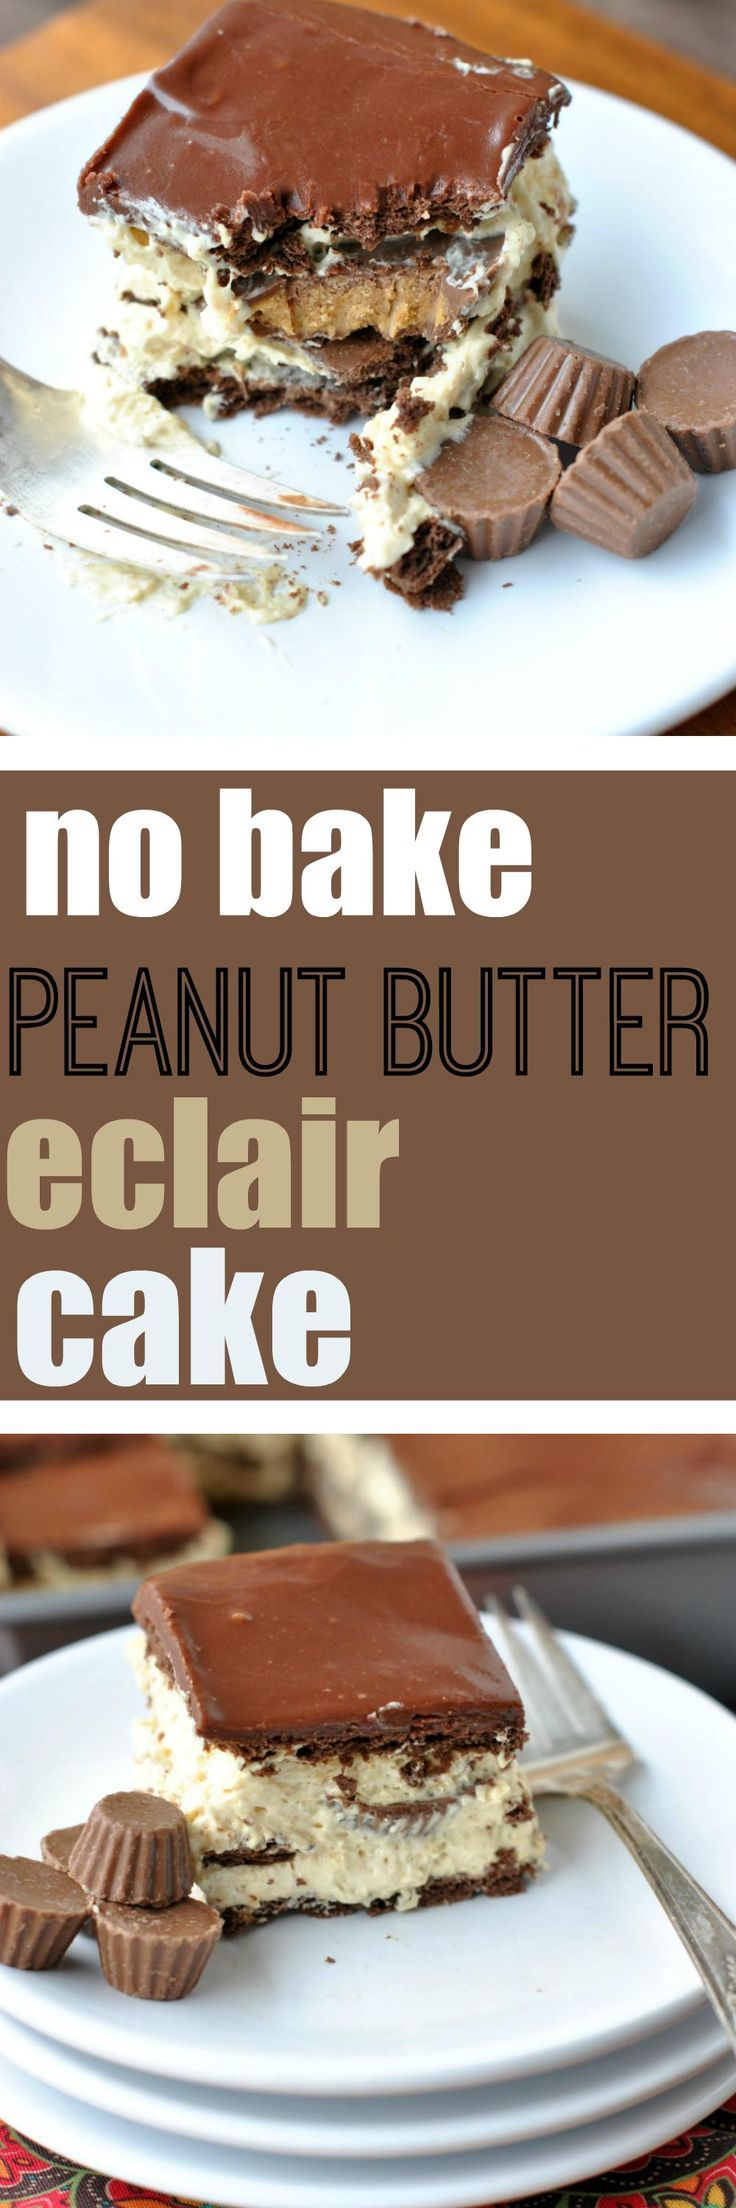 Too hot to turn on the oven? Try making this No Bake Peanut Butter version of a Chocolate Eclair Cake!